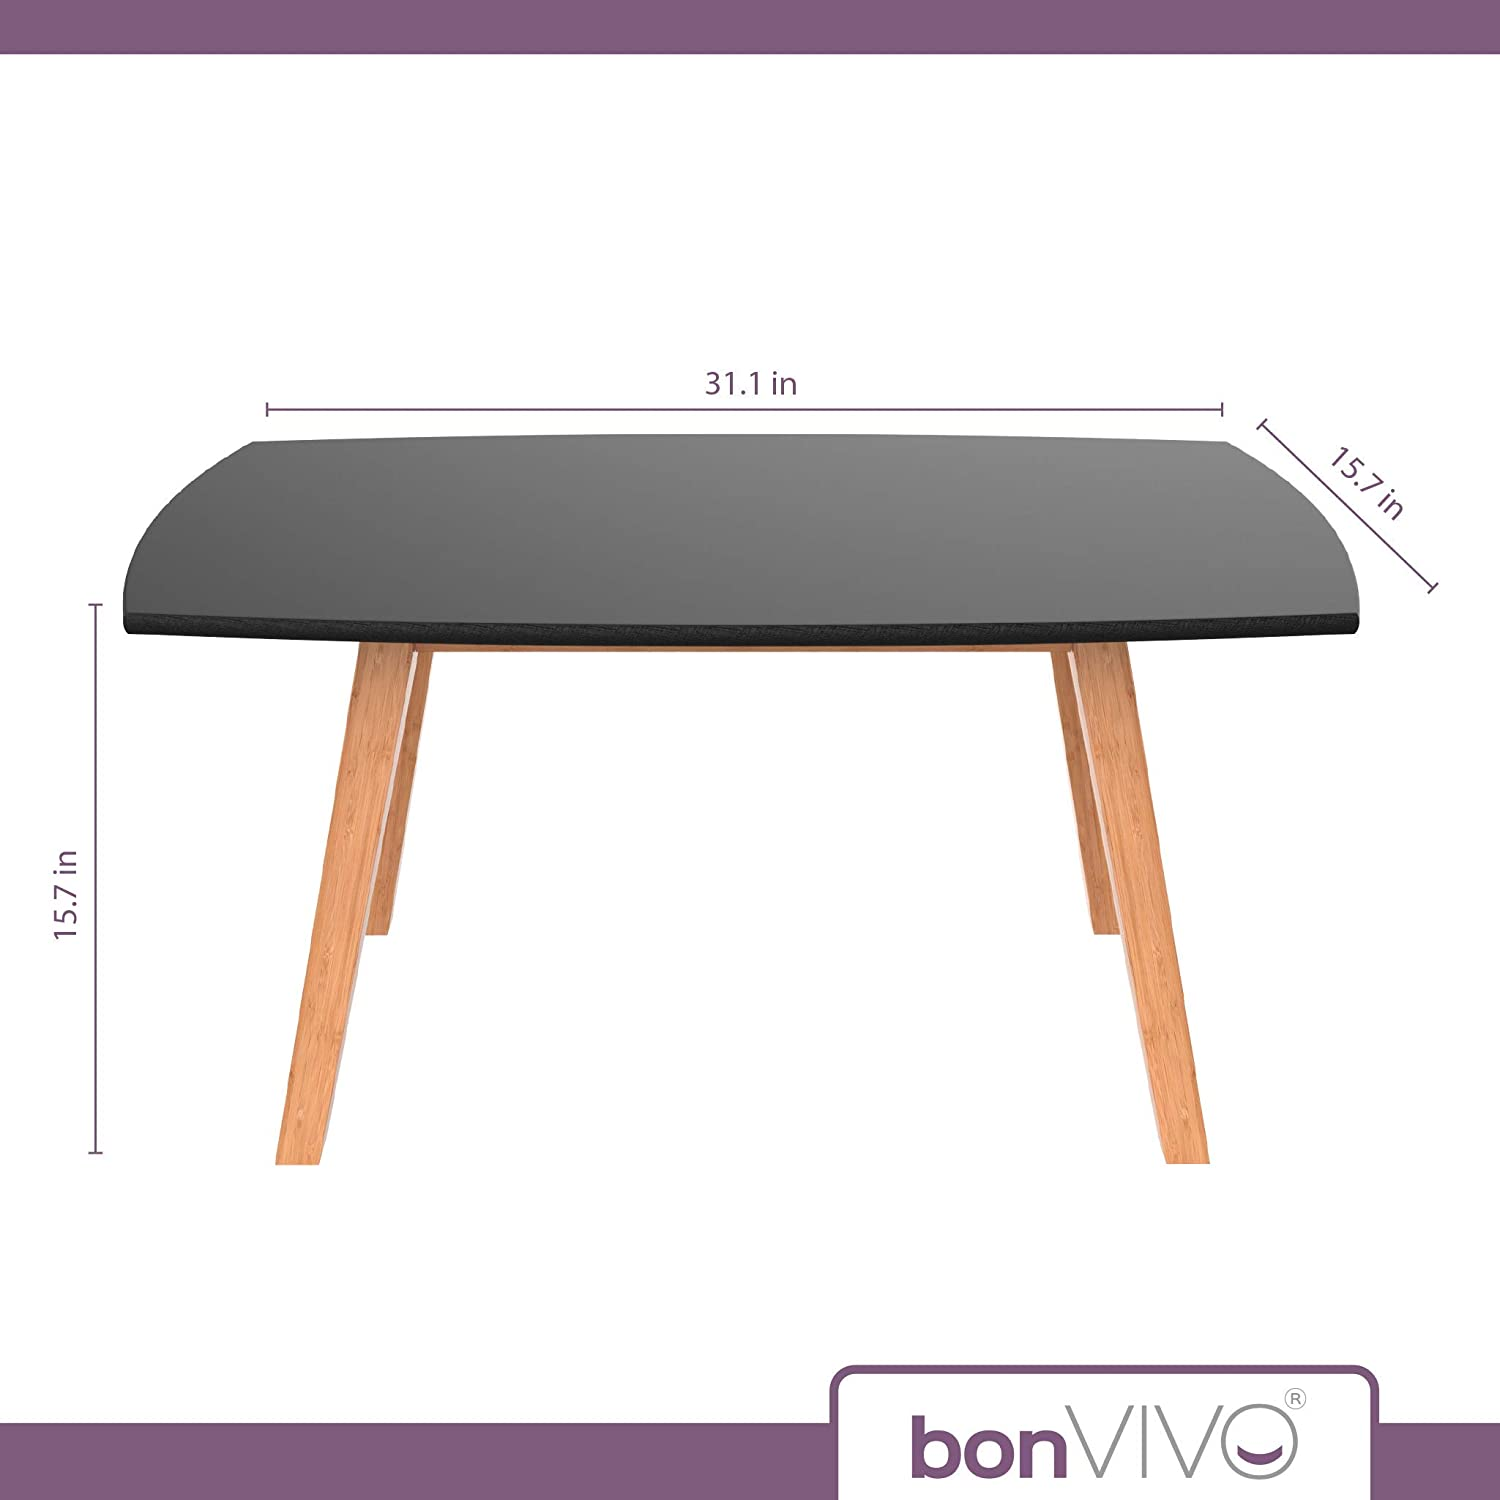 bonVIVO Black Coffee Table Franz - Designer Coffee Tables for Living Room and End Table That can be Used as Side Table, Wooden Coffee Table with Bamboo Frame: Kitchen & Dining